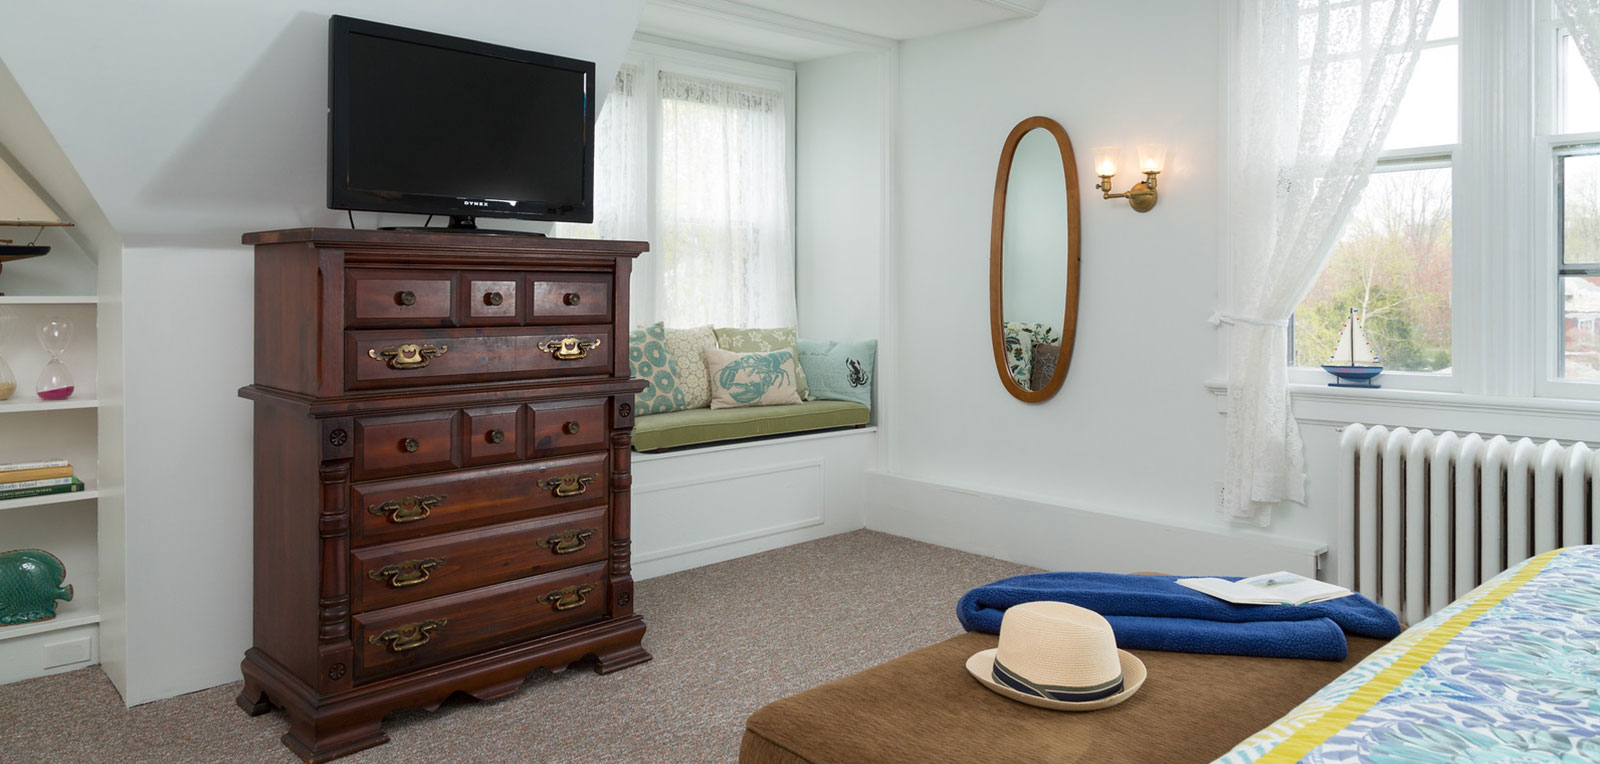 Admiral Sims' Suite Room with TV and Mirror | ADMIRAL SIMS B&B, Newport Rhode Island